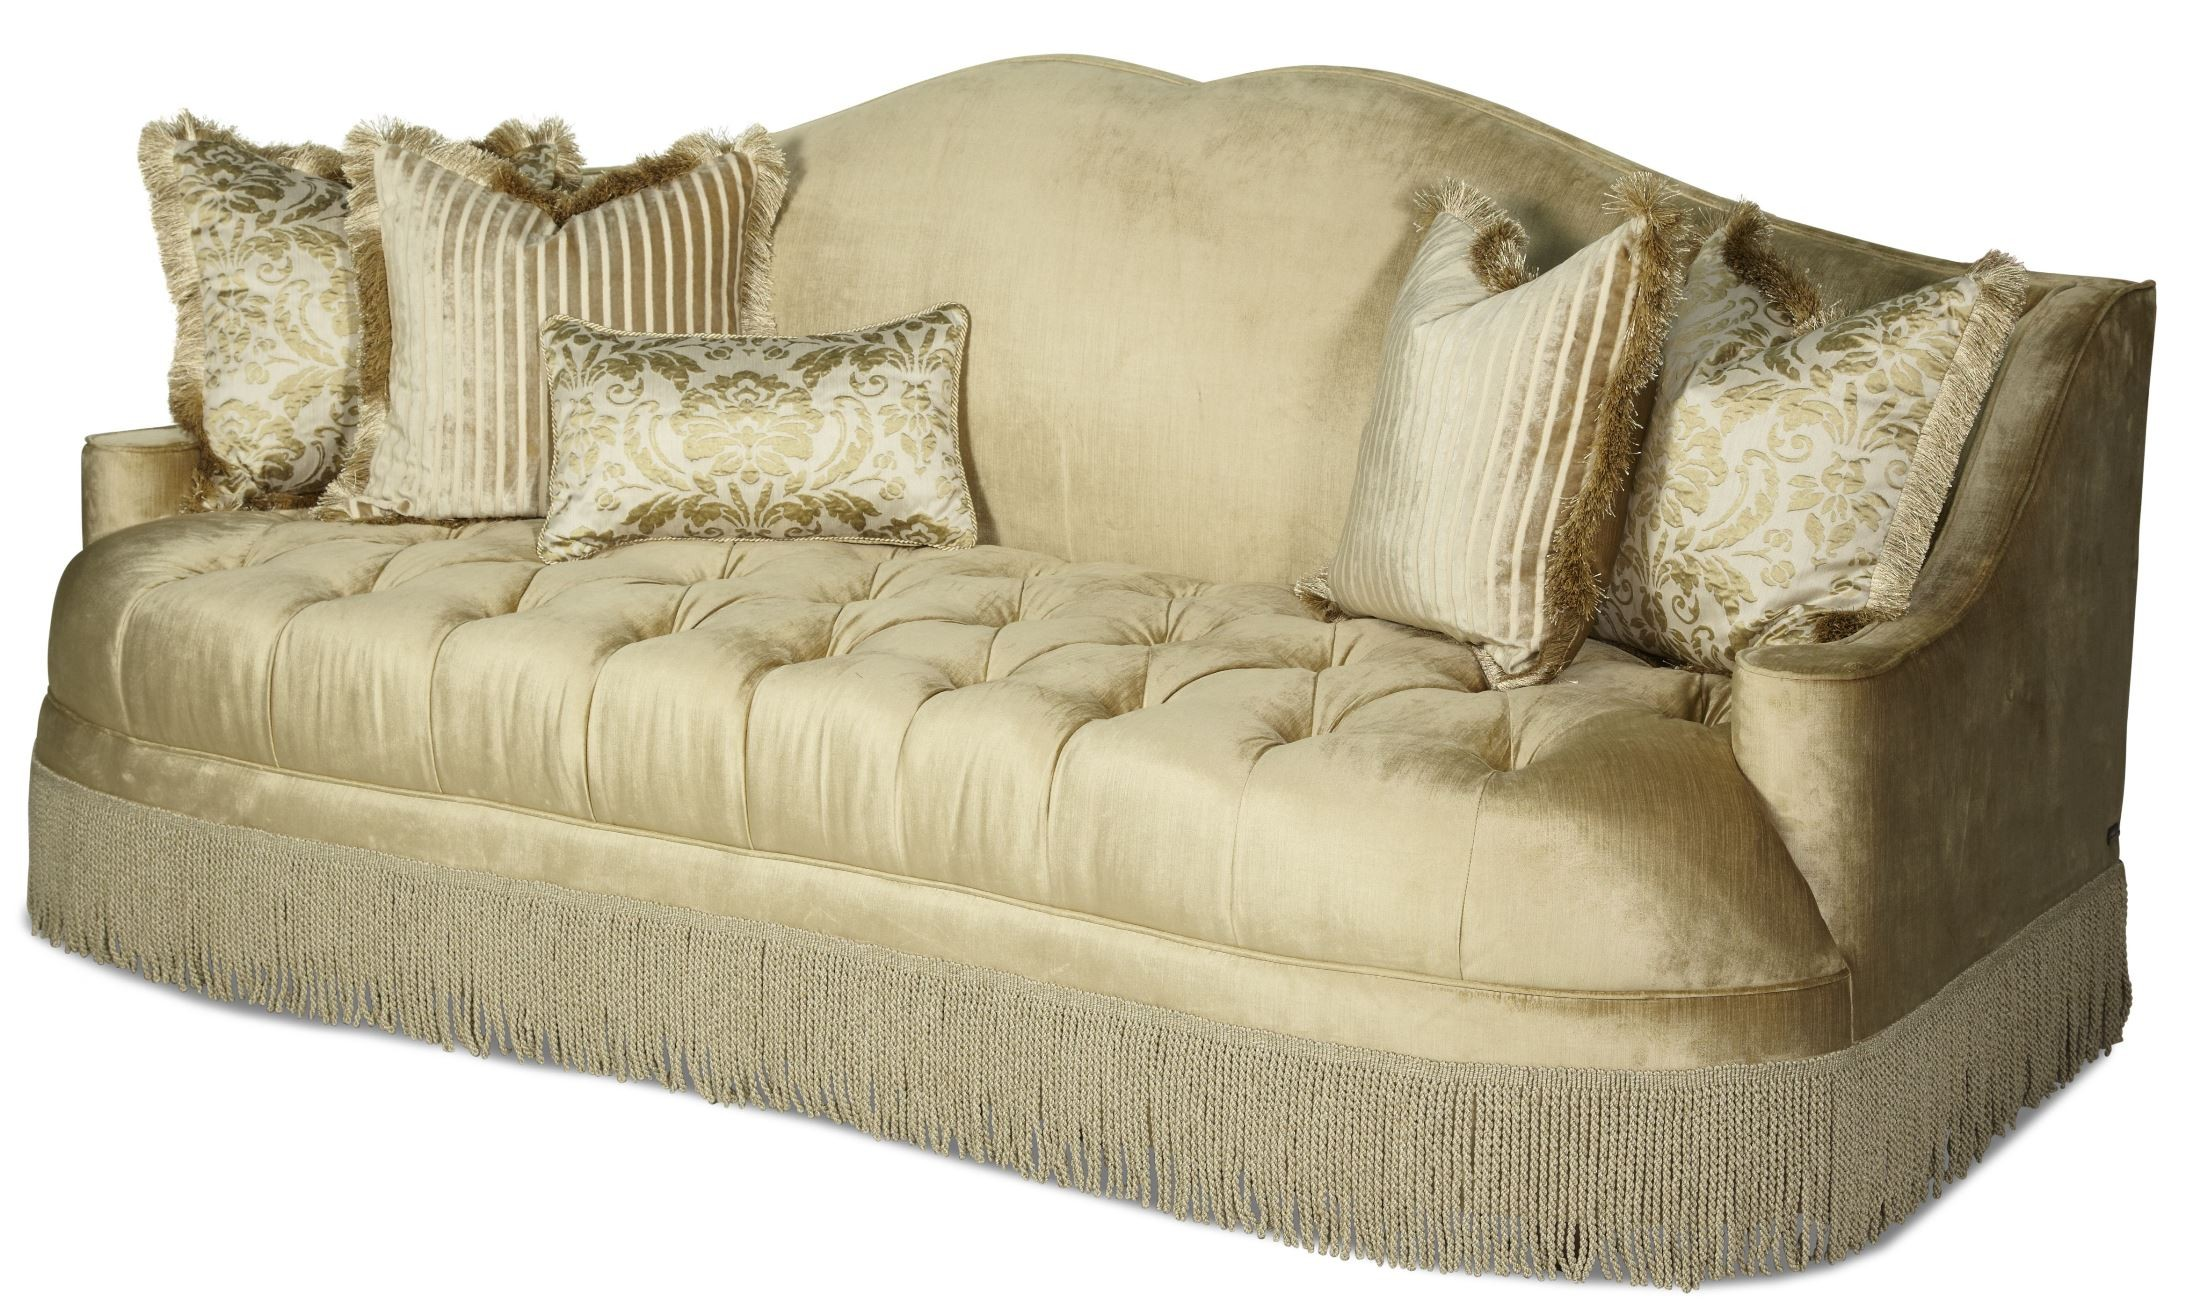 courts sofa t cushion covers imperial court pearl tufted from aico 79815 00